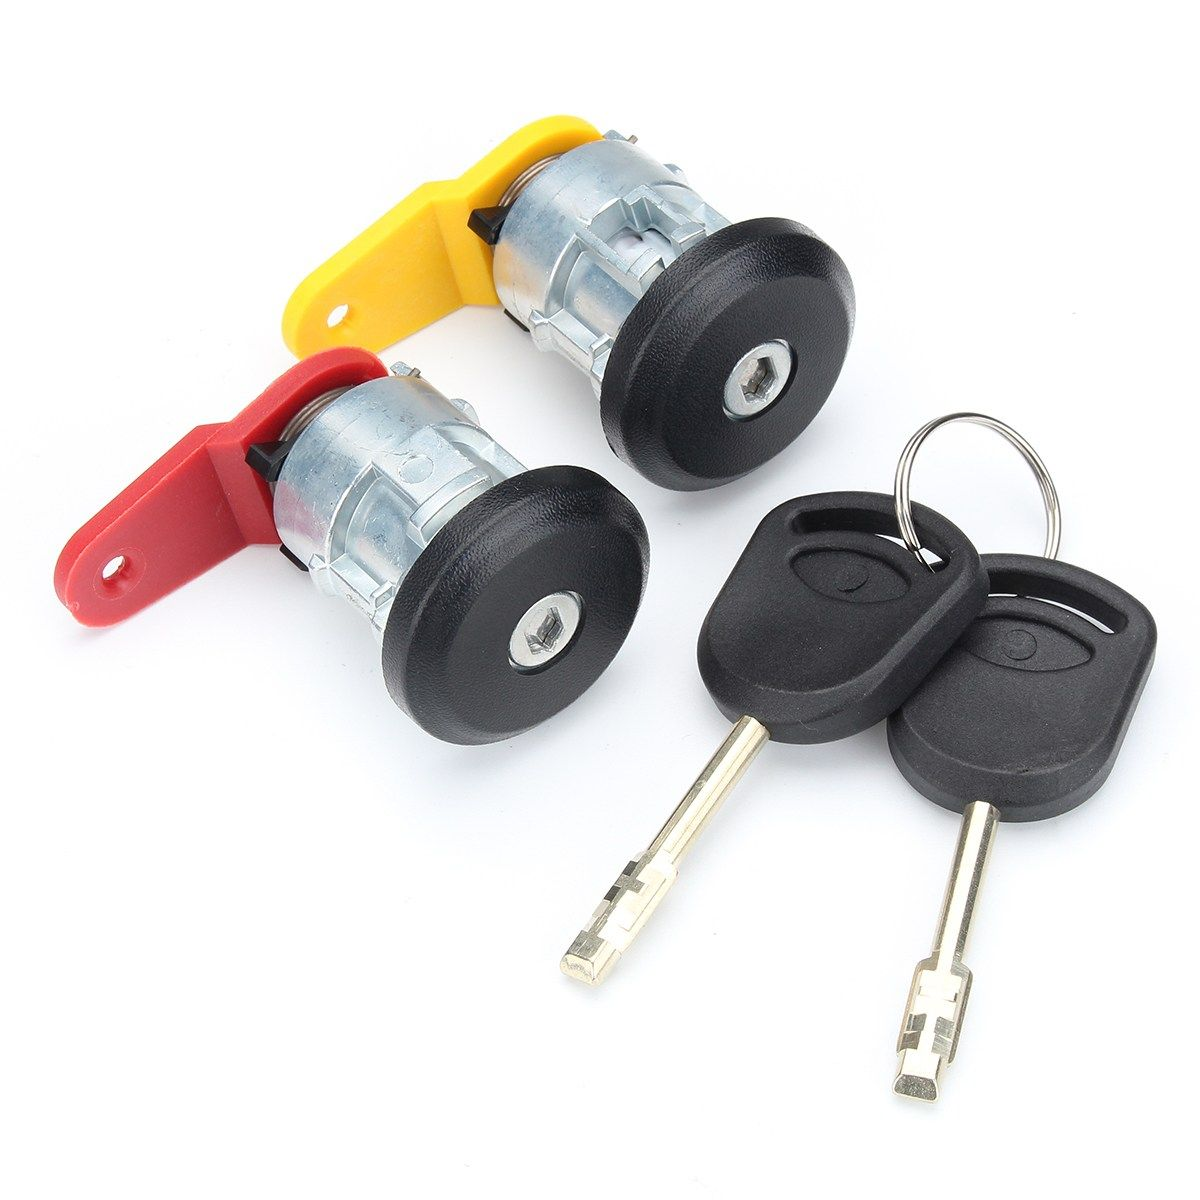 Car Door Lock Complete Set With 2 Keys Front Right Left For Ford Escort /Fiesta KA COURIER 1995-2002